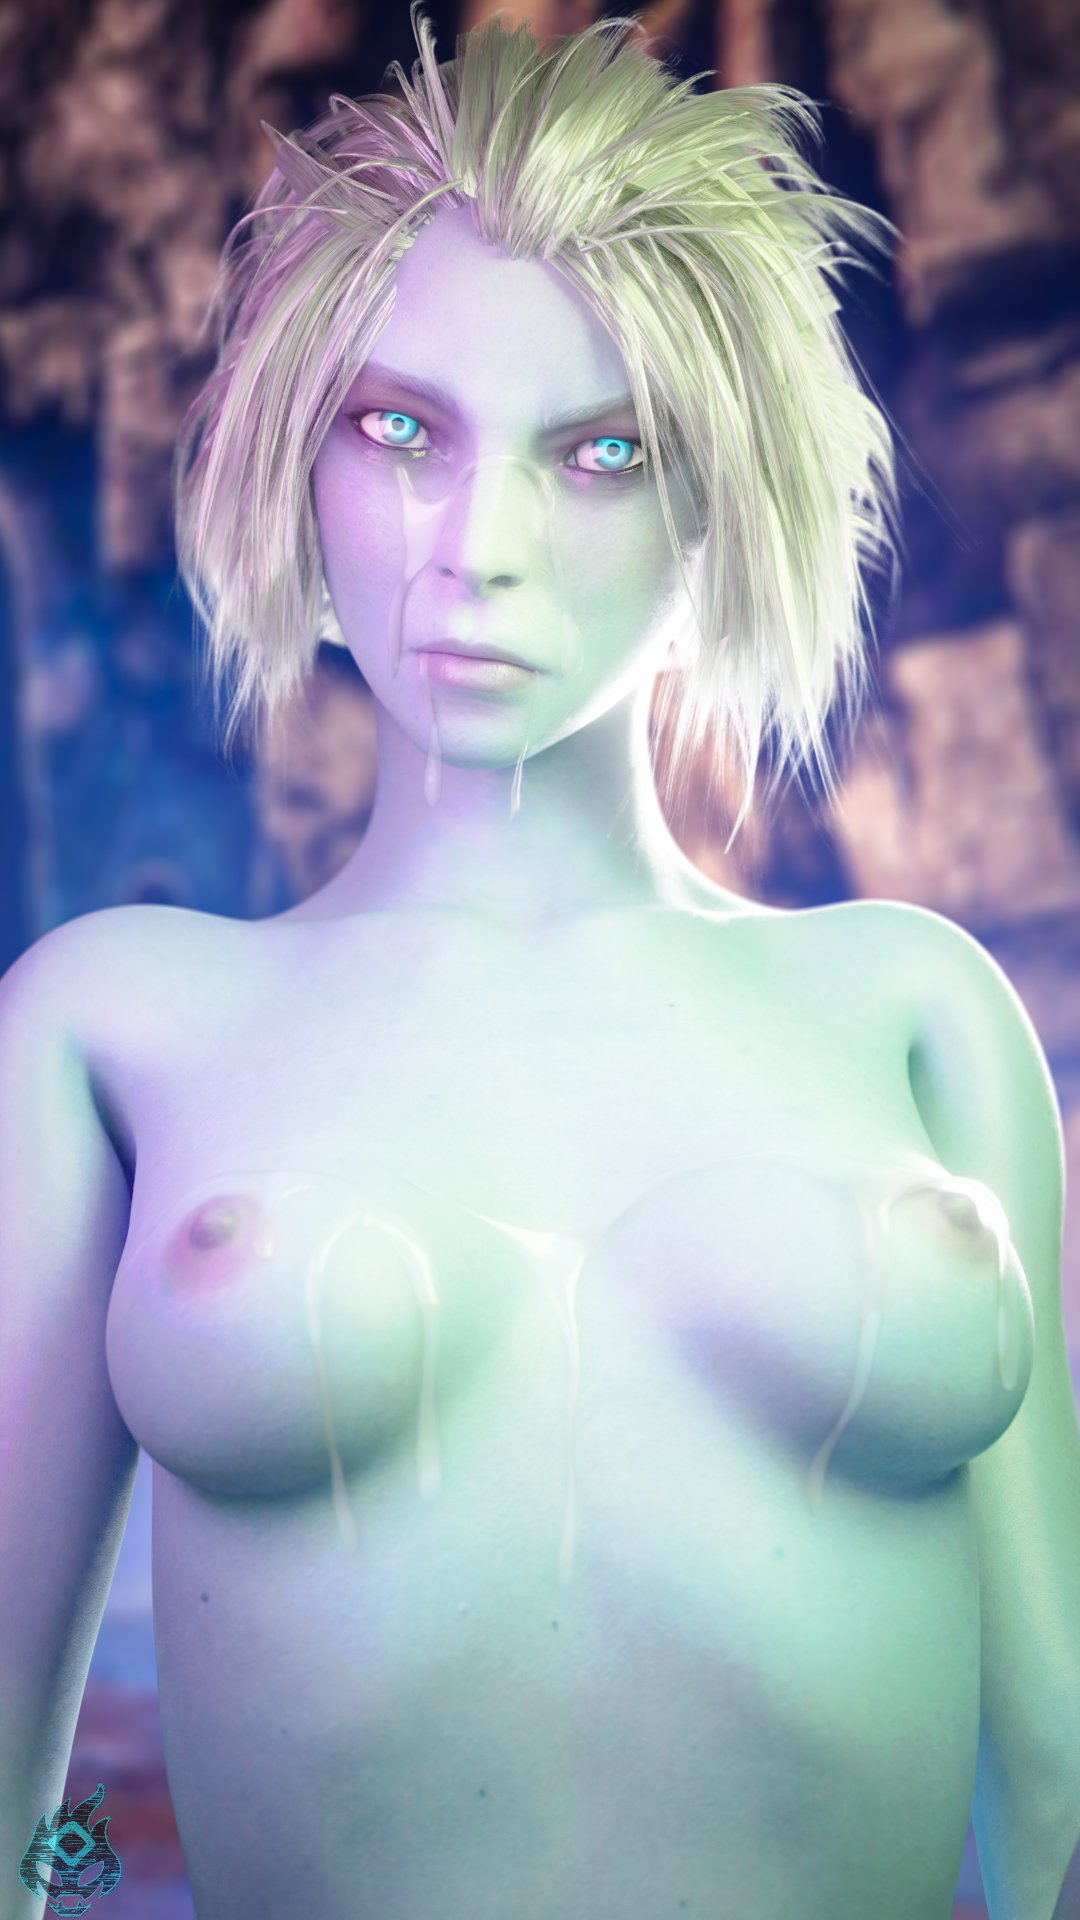 mara sov 2 destiny forsaken What if adventure time was a 3d anime game nudity